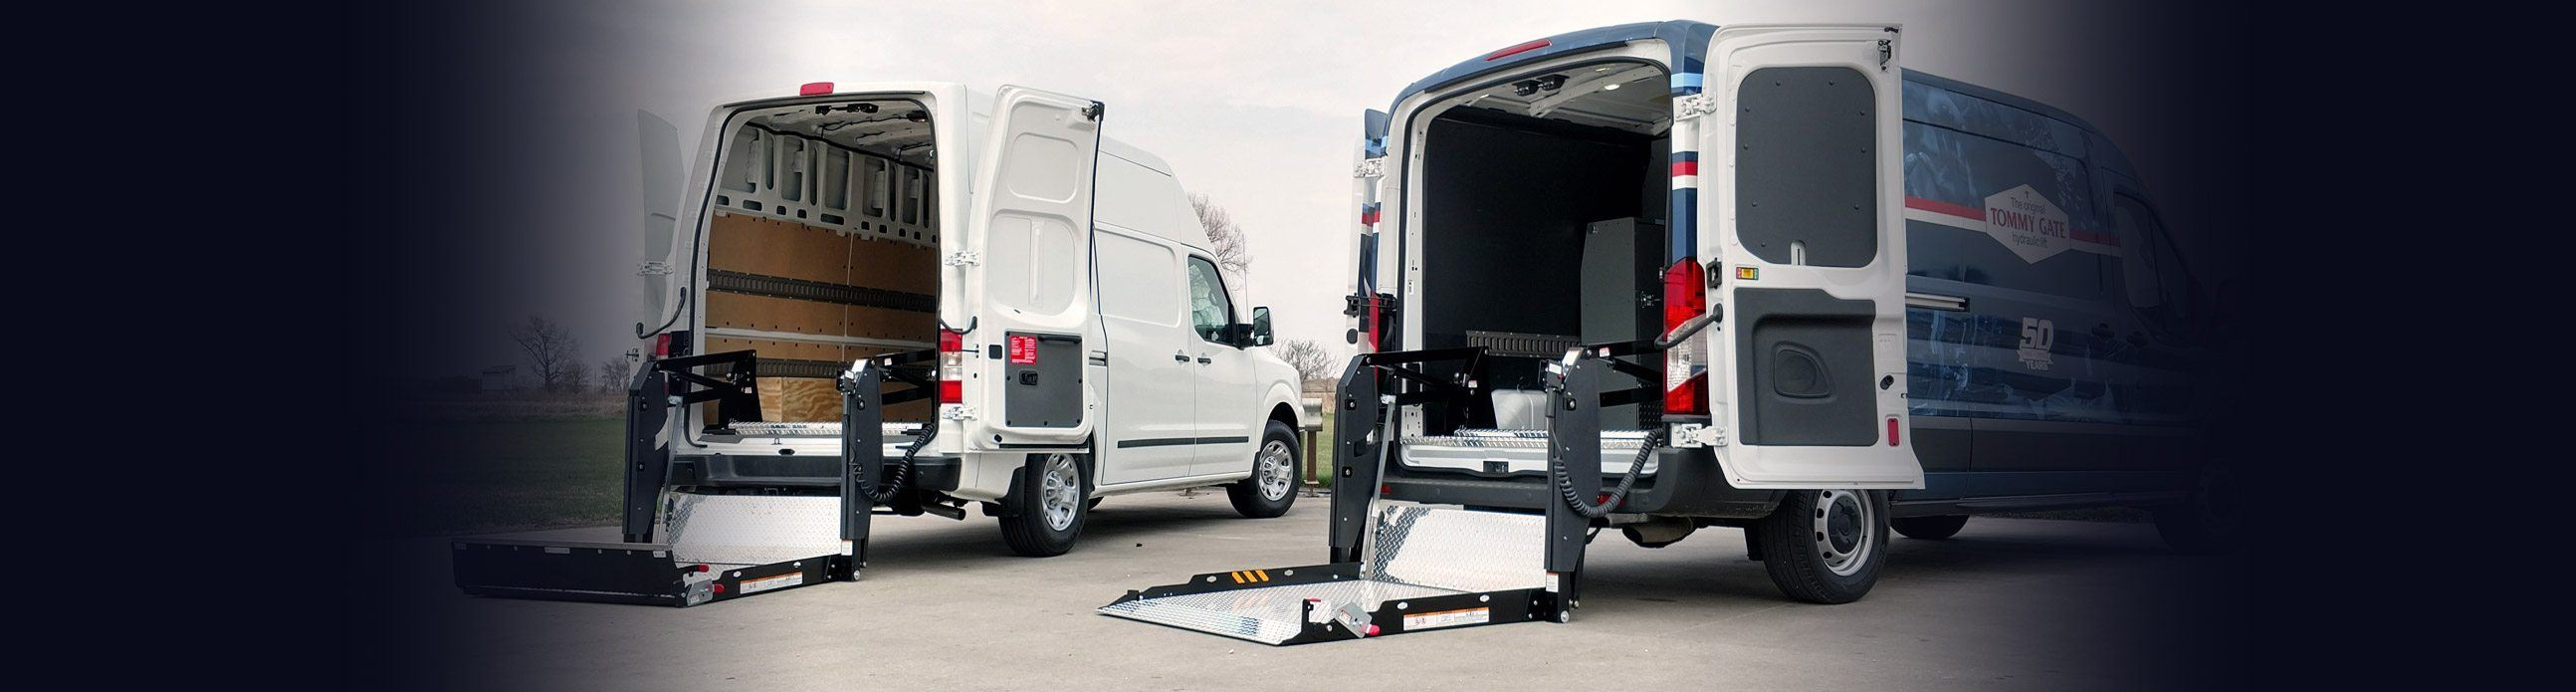 Liftgate Sales, Parts, Service